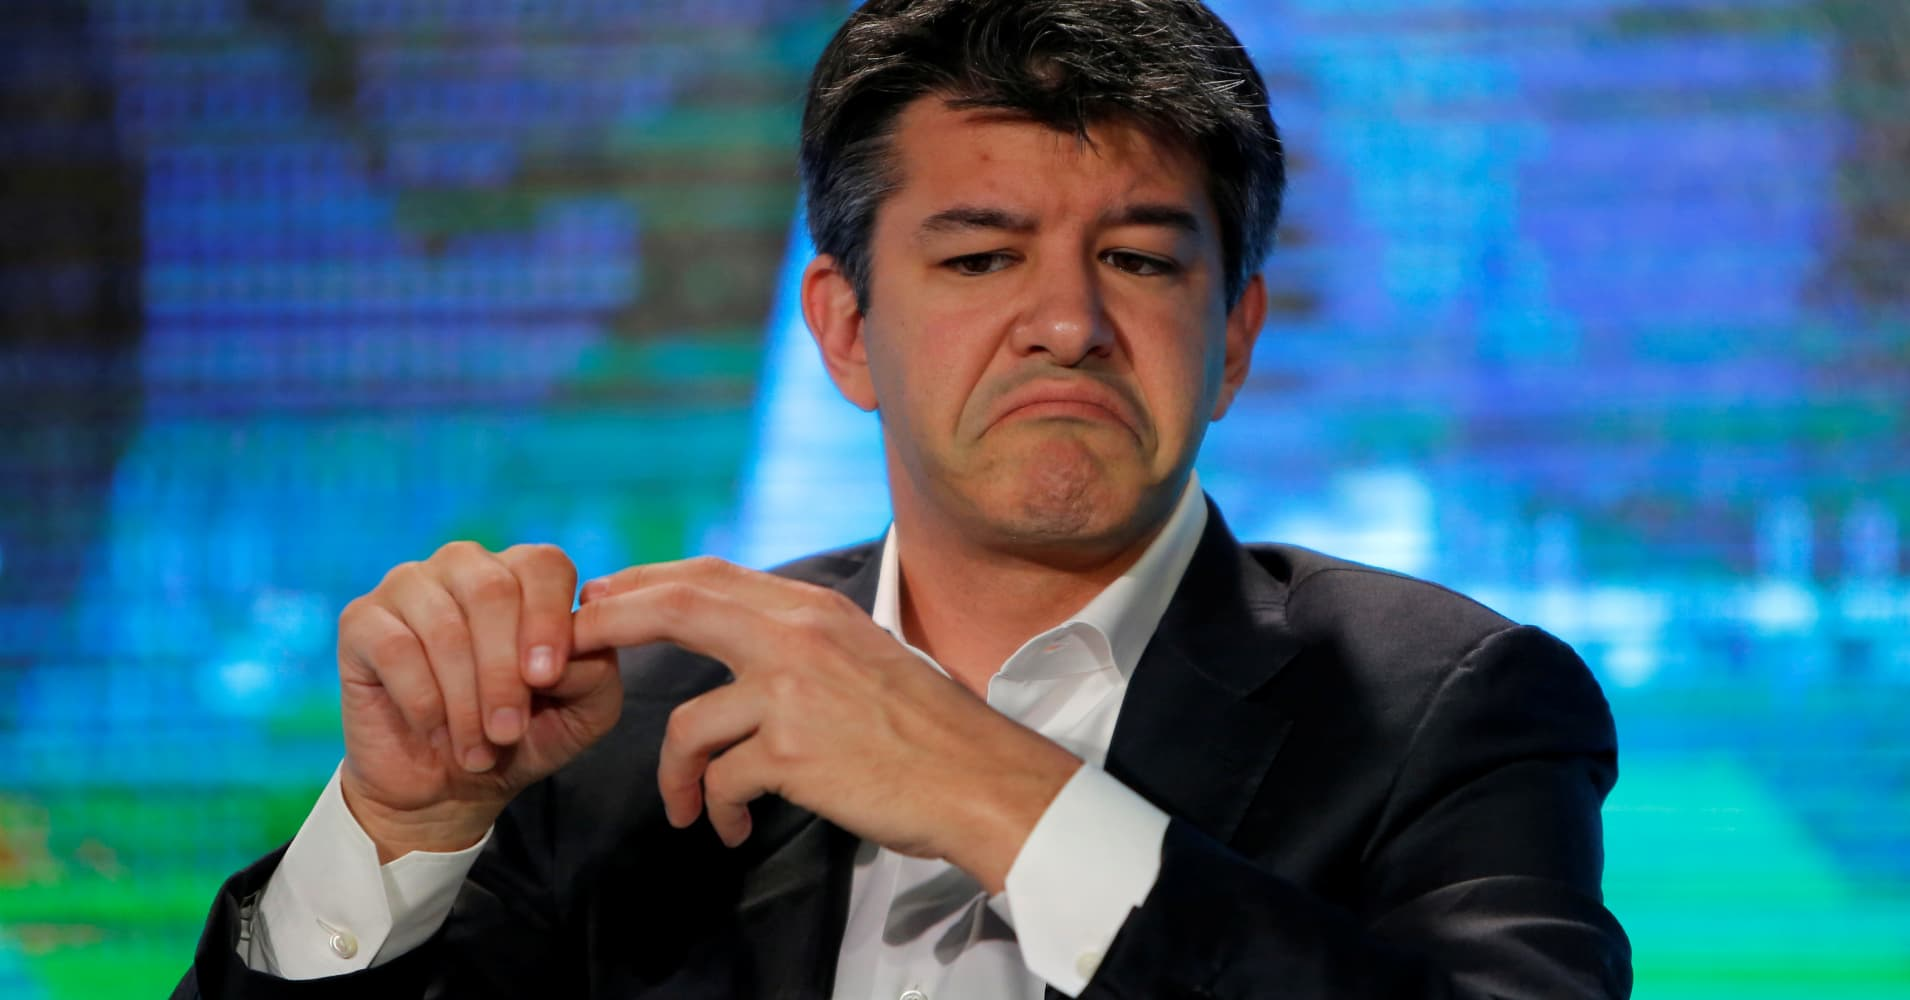 Uber's CEO is out: Here's everything that went wrong with Uber this year